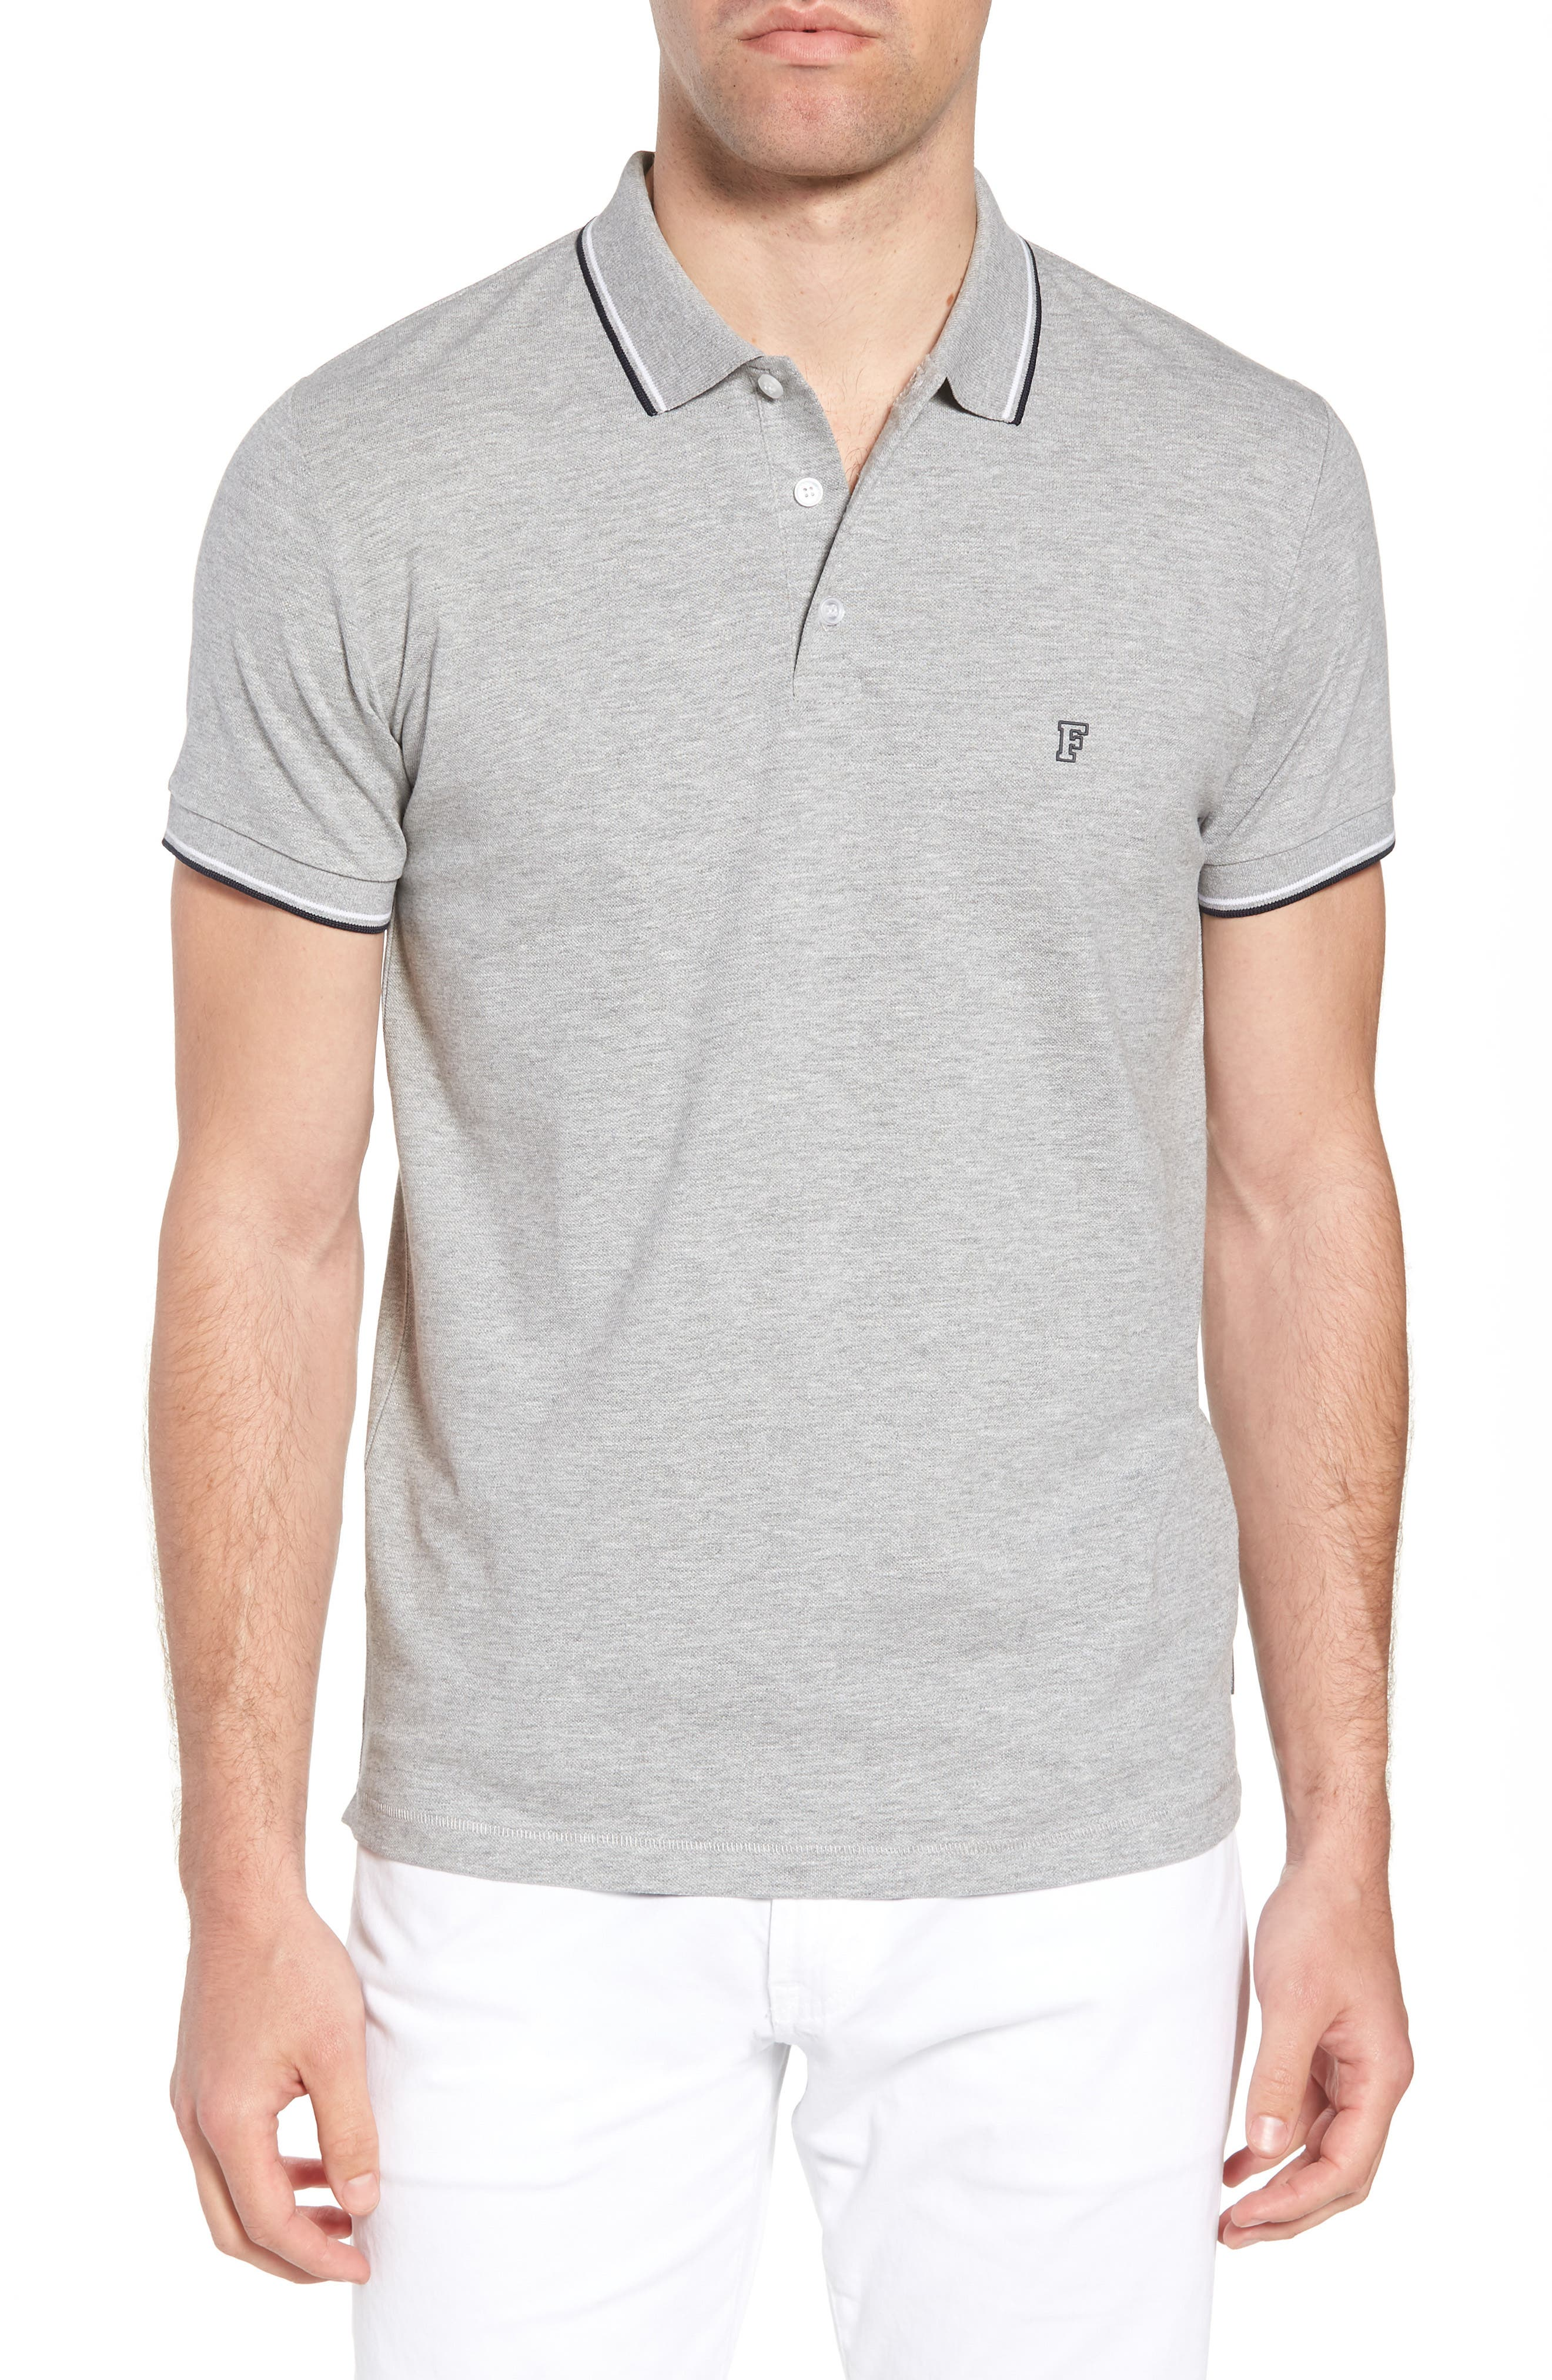 FRENCH CONNECTION Cotton Polo Shirt, Main, color, GREY MELANGE